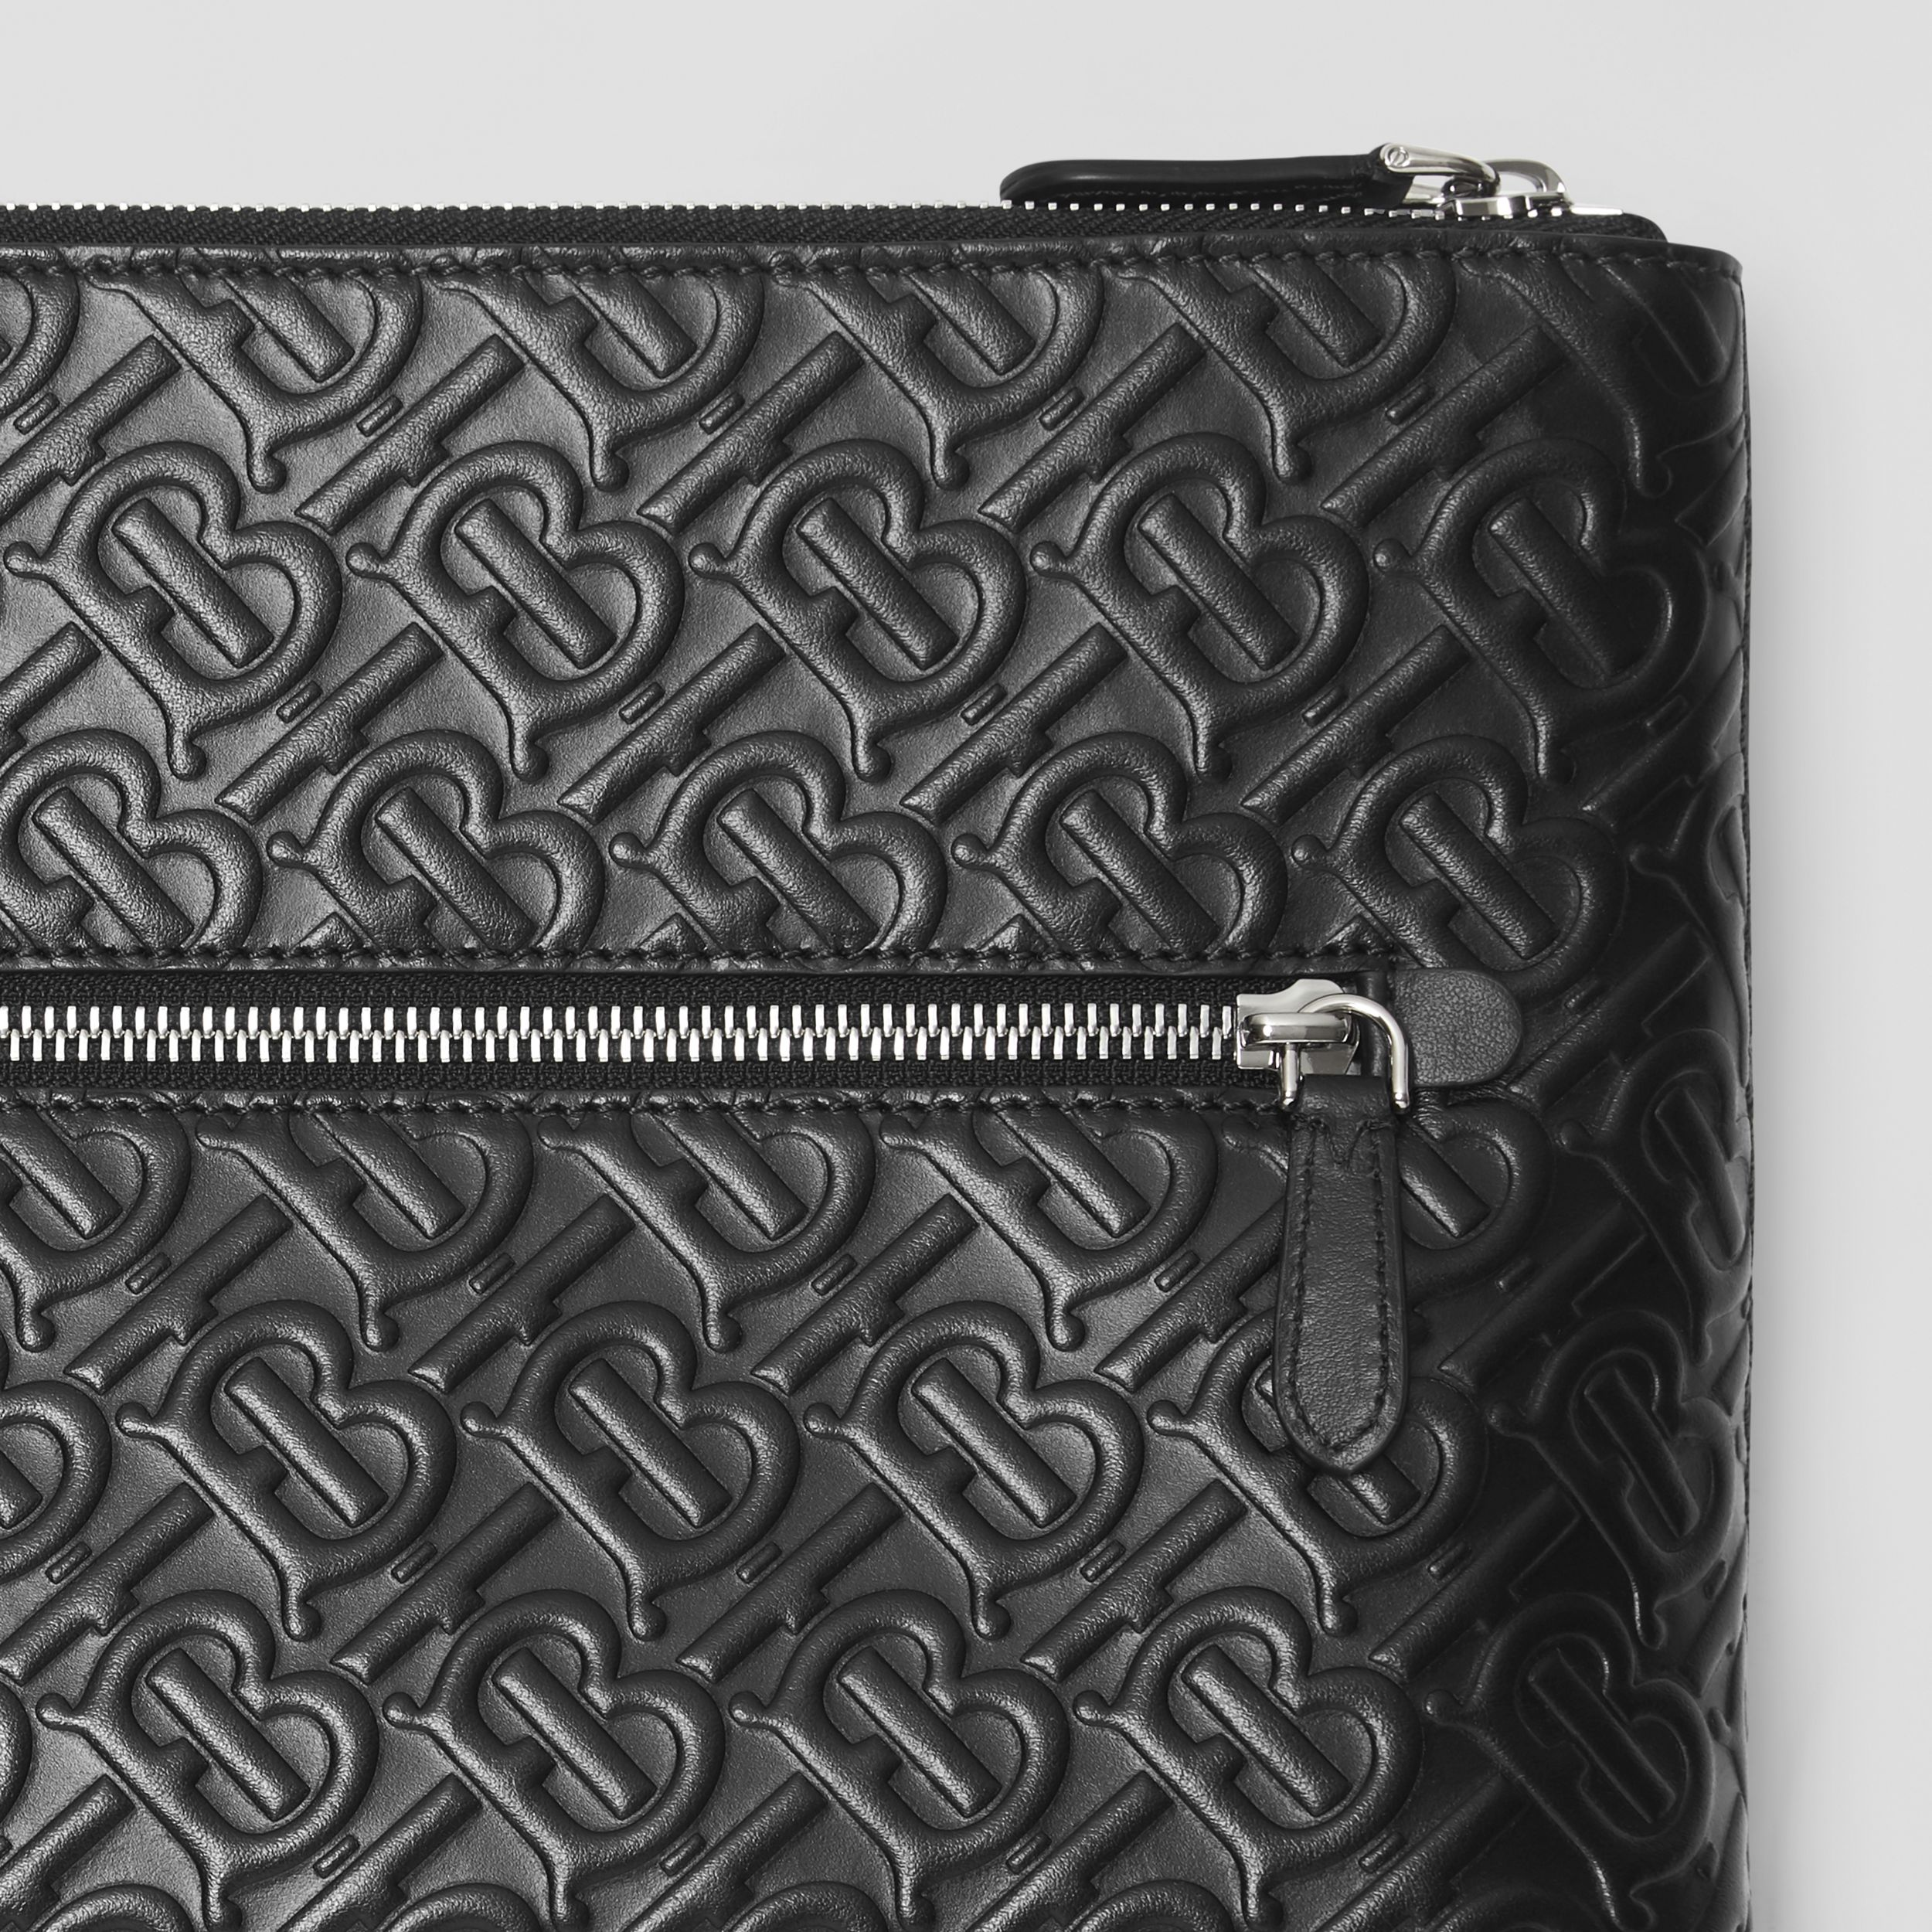 Monogram Leather Zip Pouch in Black | Burberry - 2